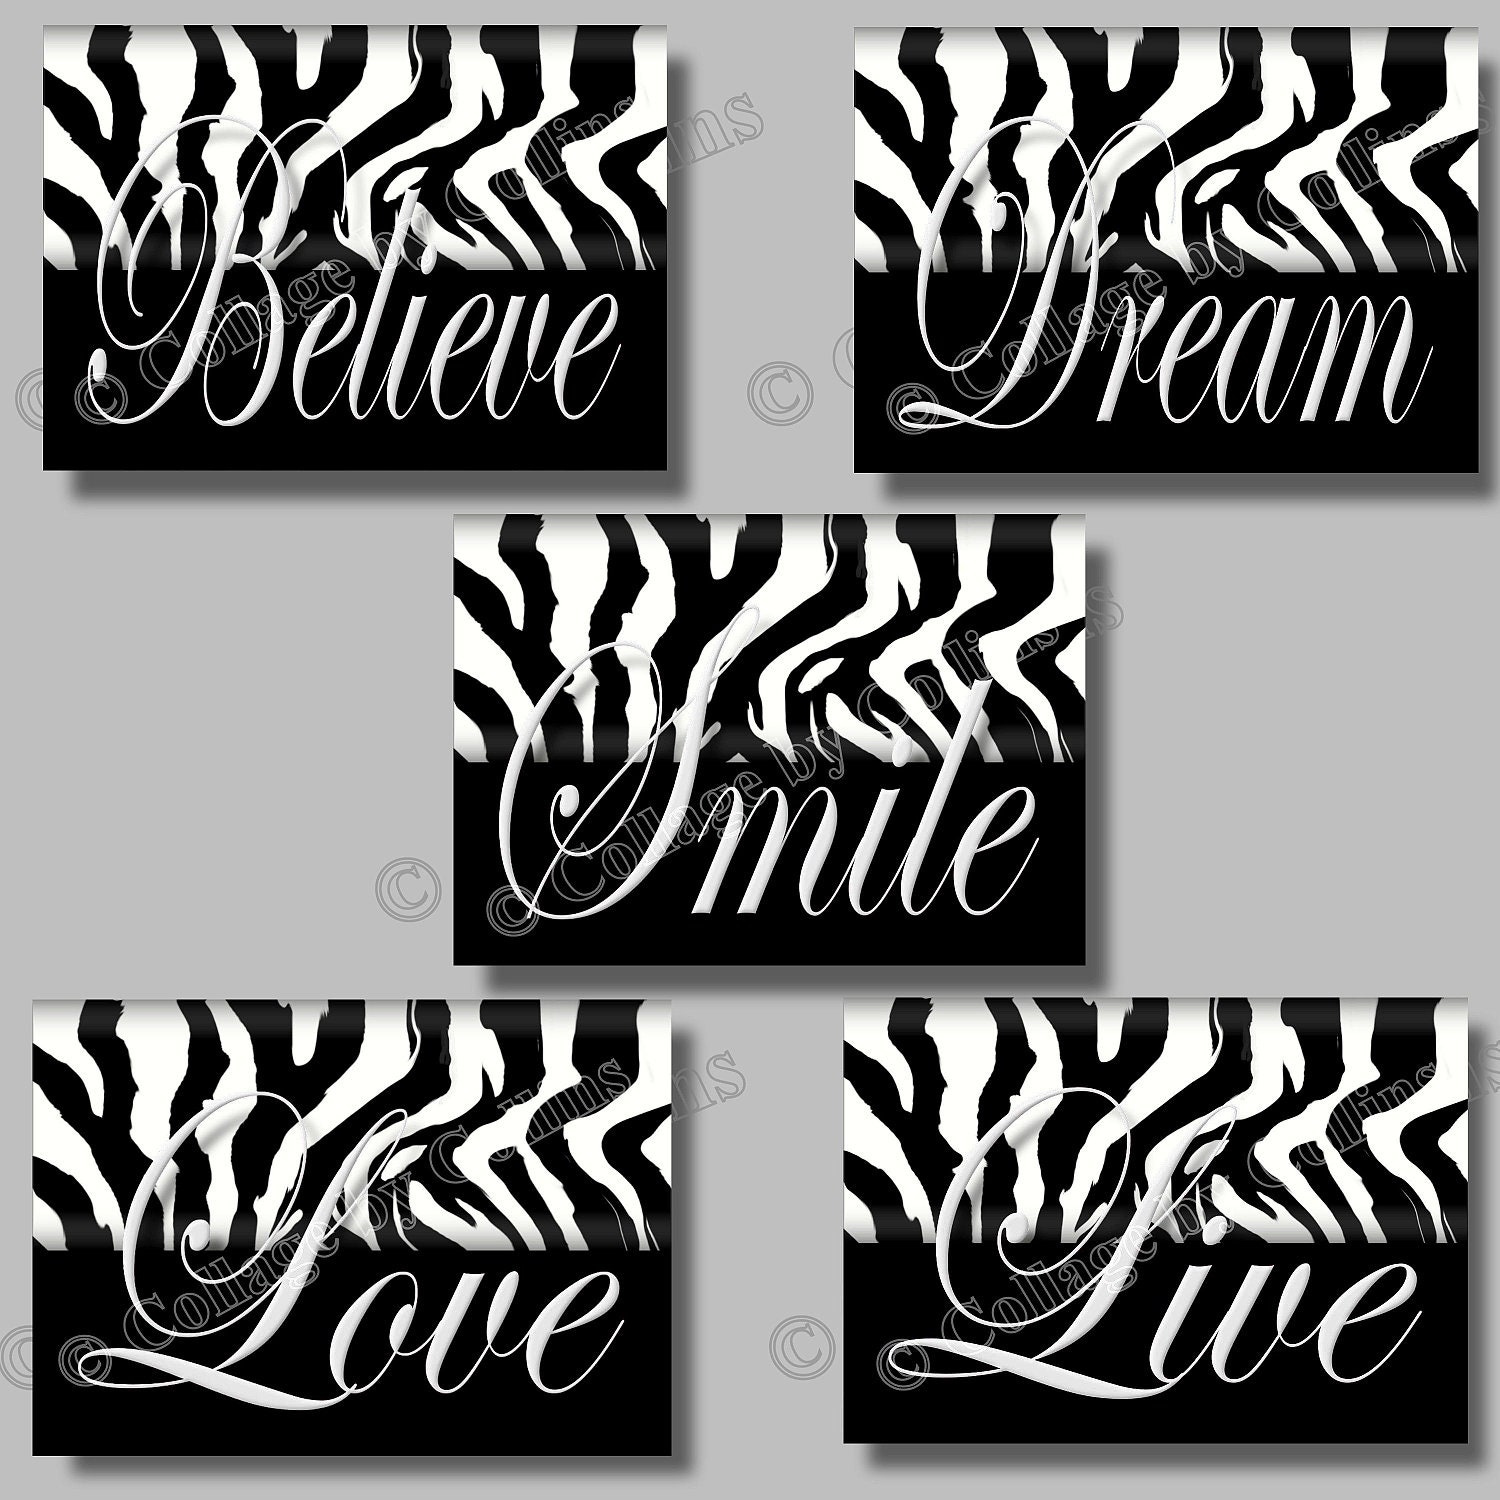 Zebra Wall Decor wall decor zebra - home design